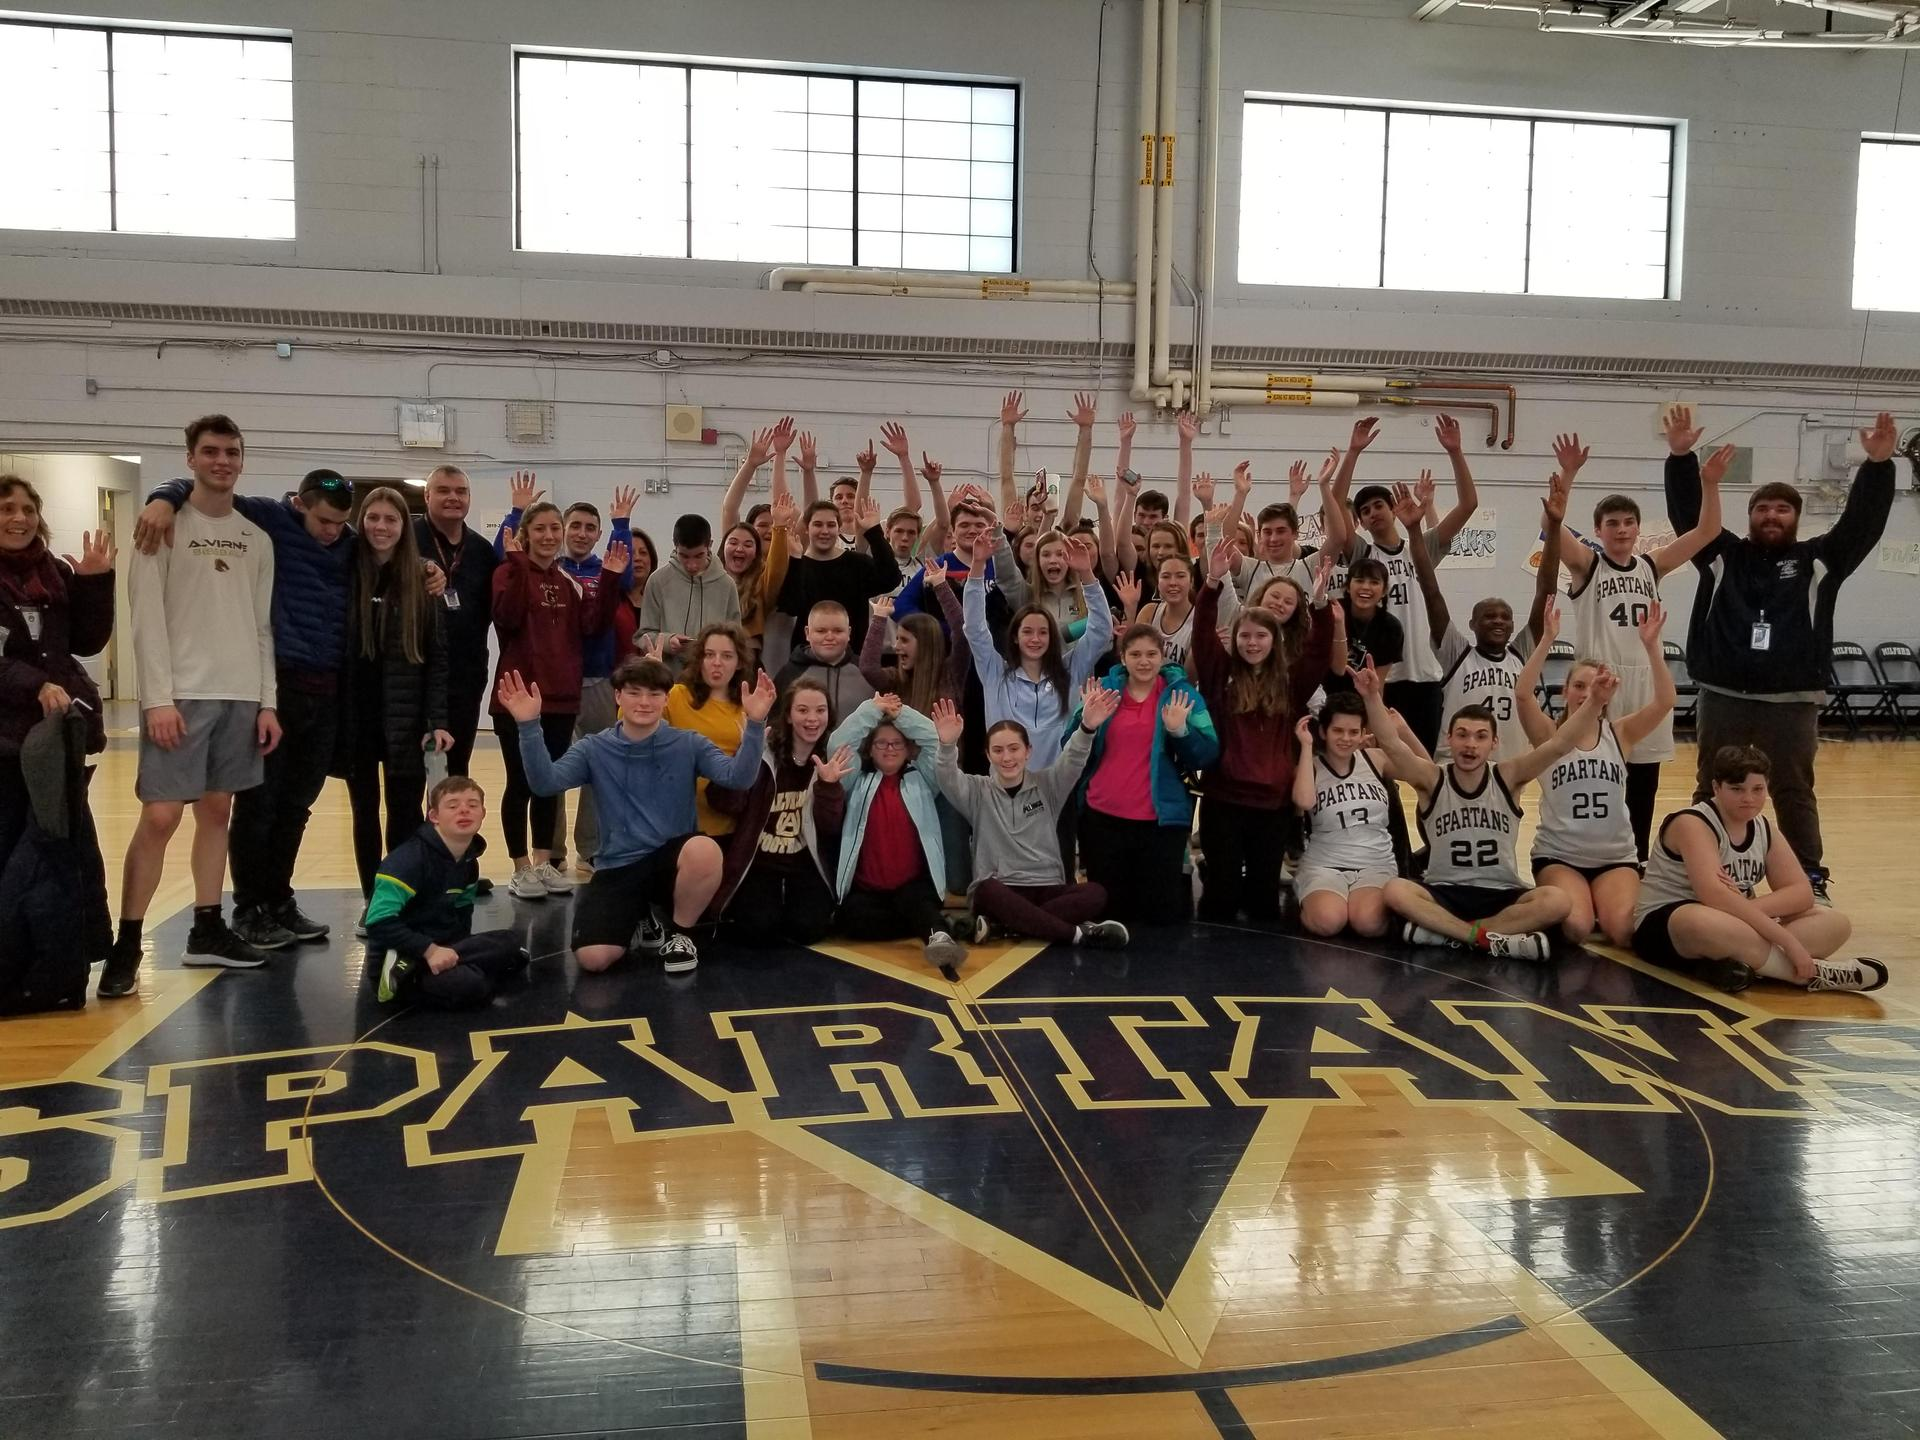 Unified Basketball team with Alvirne's basketball team raising hands in victory